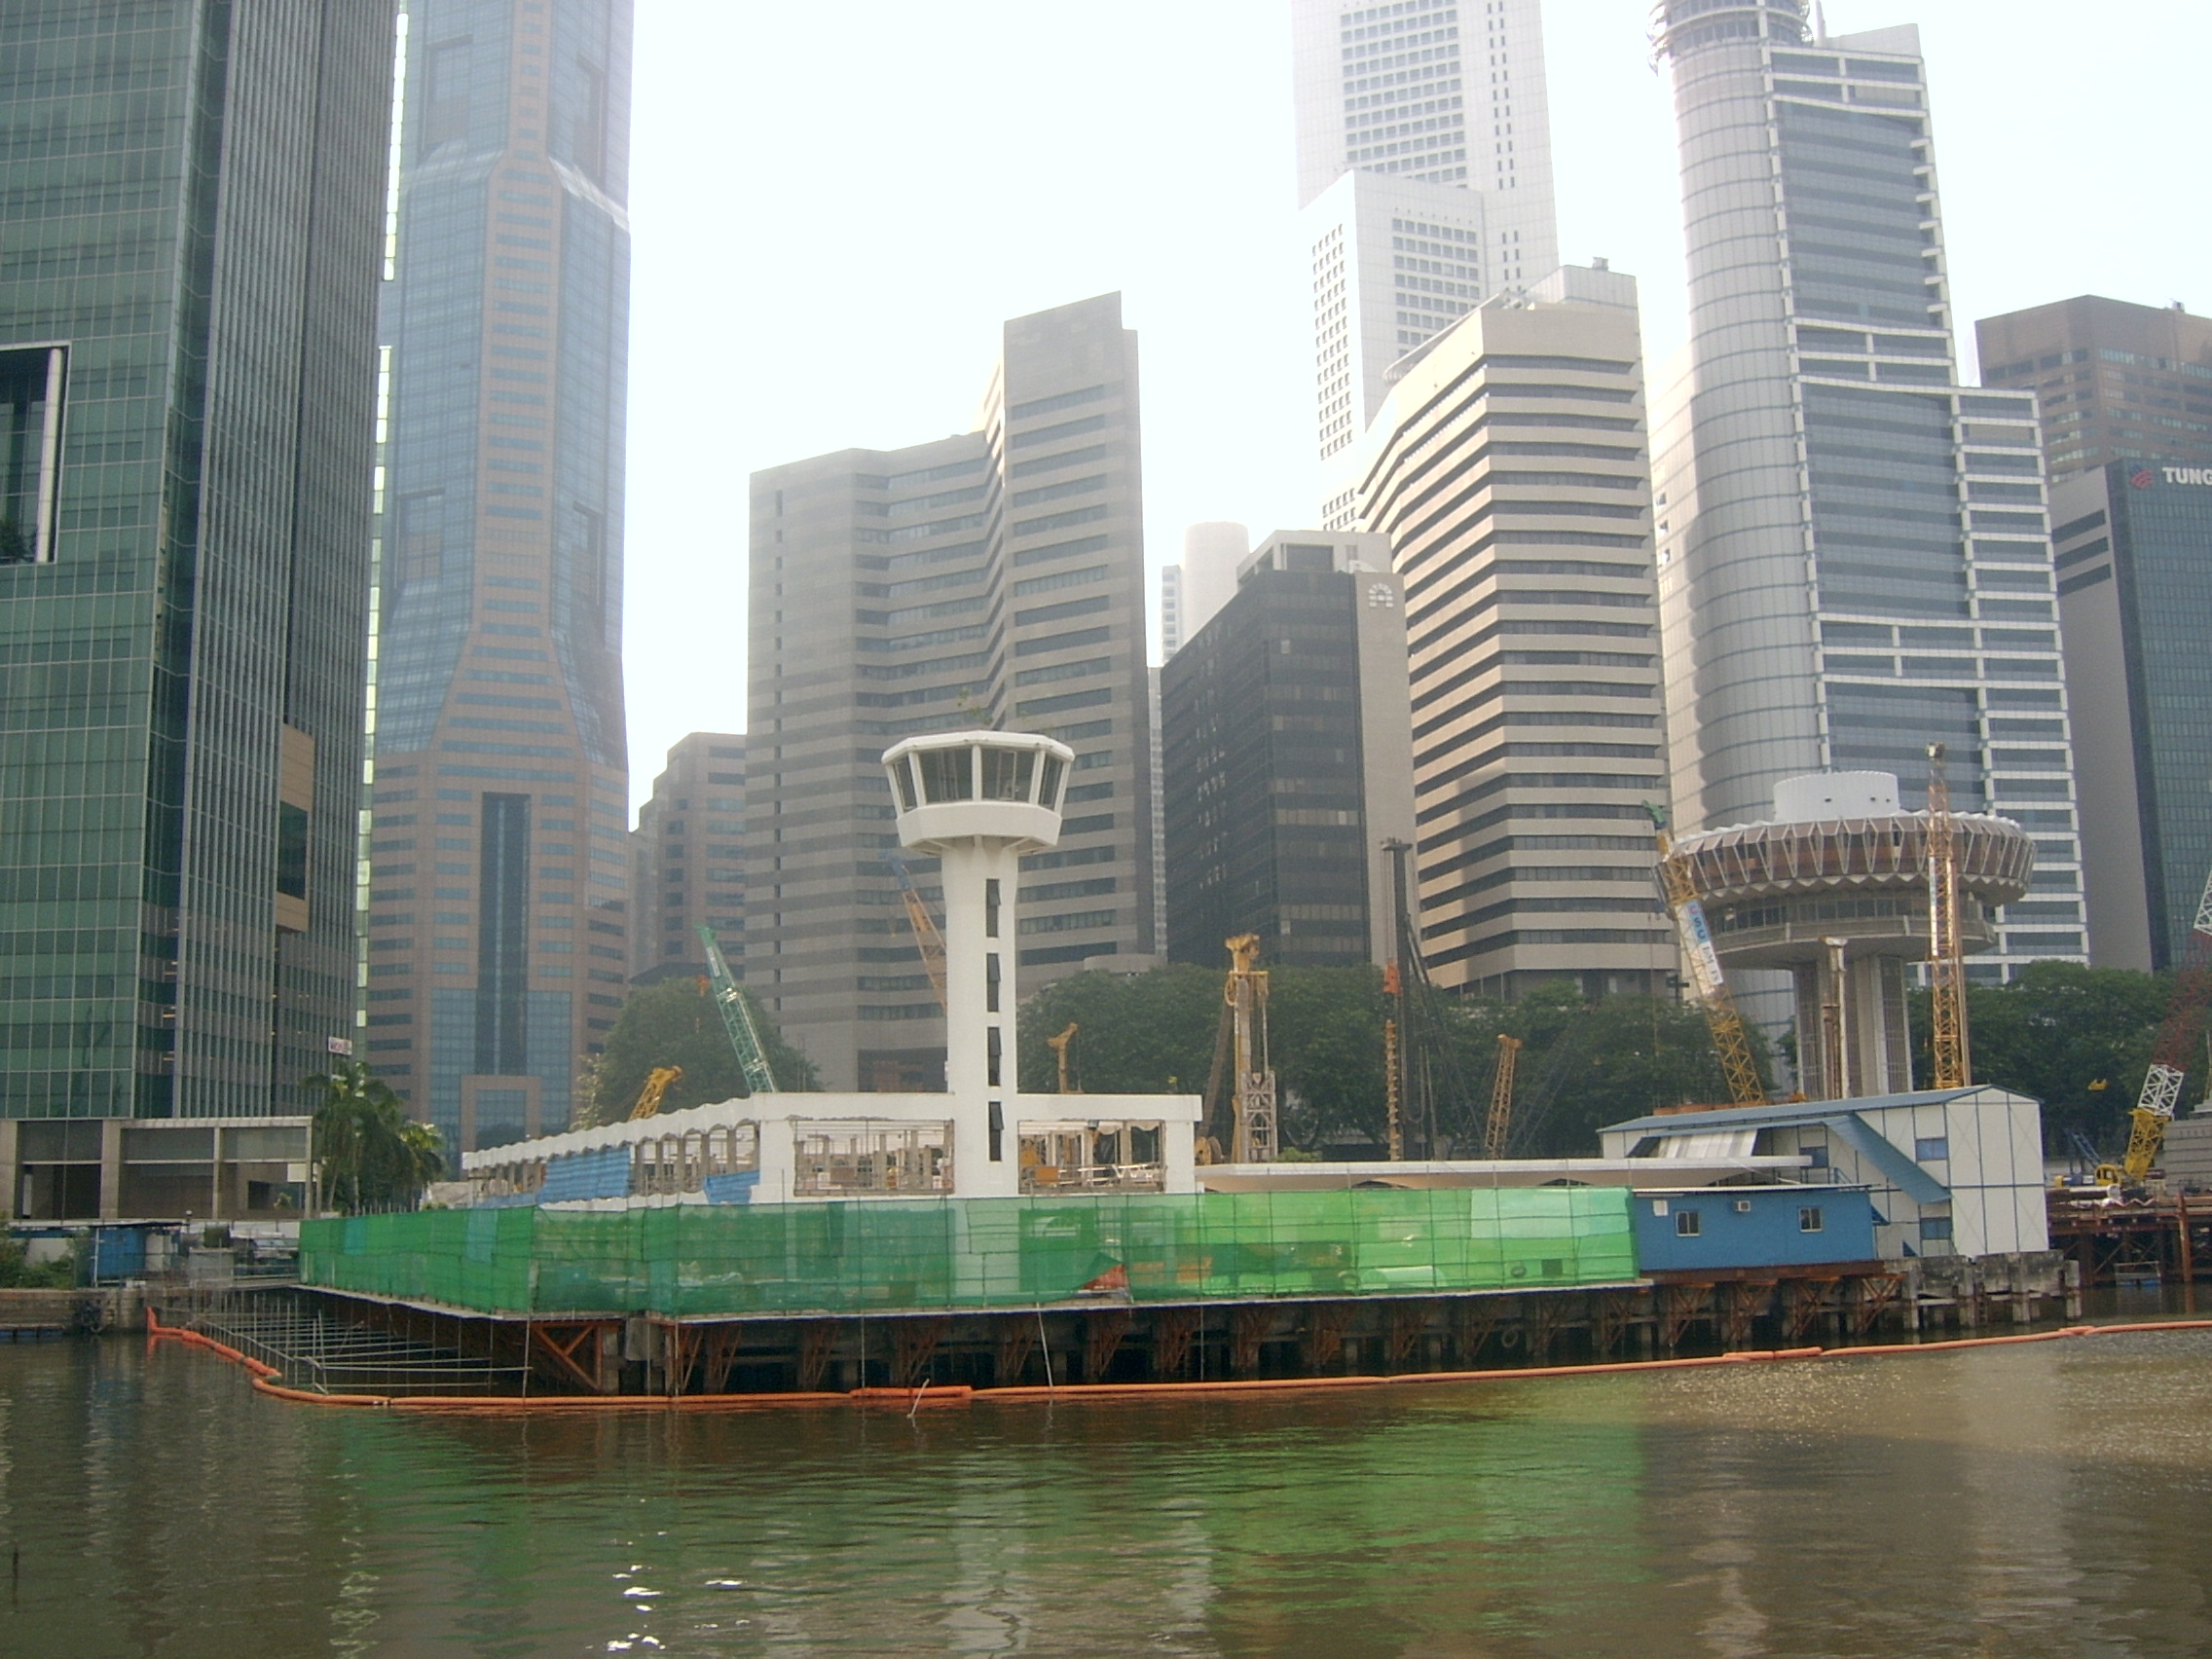 Construction - Singapore Customs House